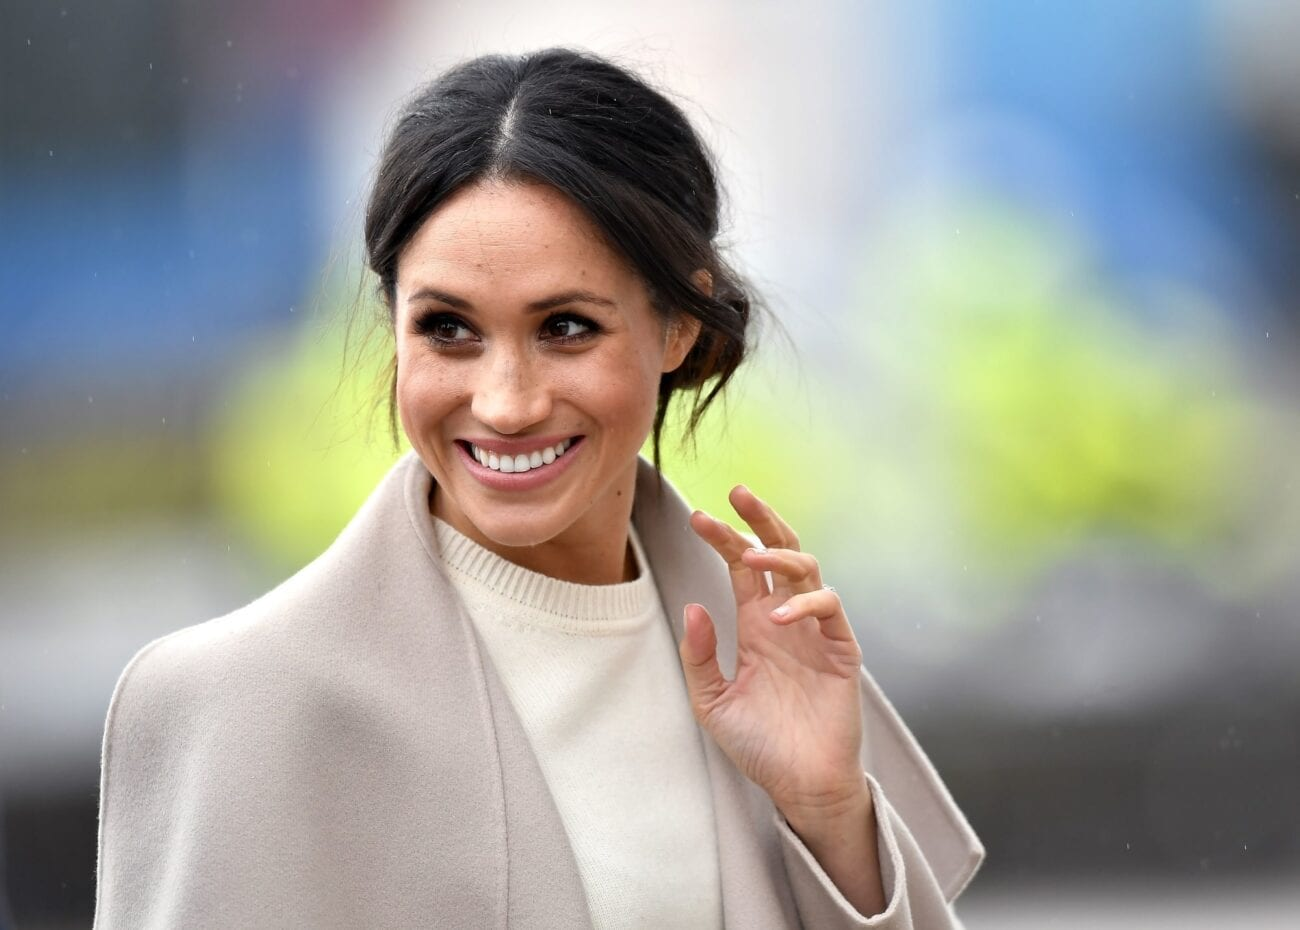 Even through social distancing, Meghan Markle has been the fashion queen of 2020. Here are iconic outfits we've seen in the news.